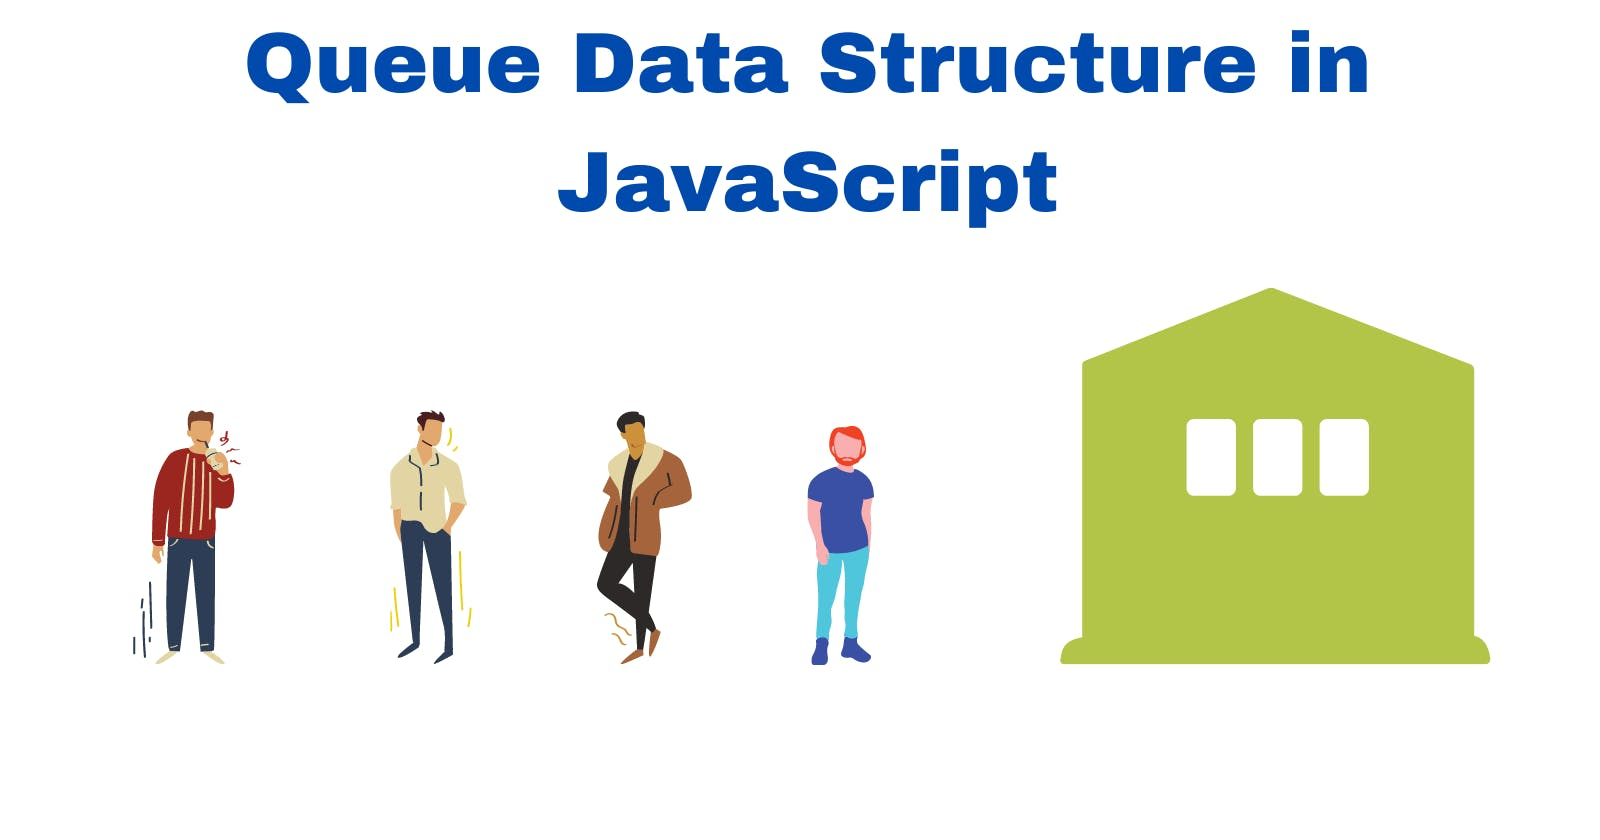 What exactly is the Queue Data Structure in JavaScript?